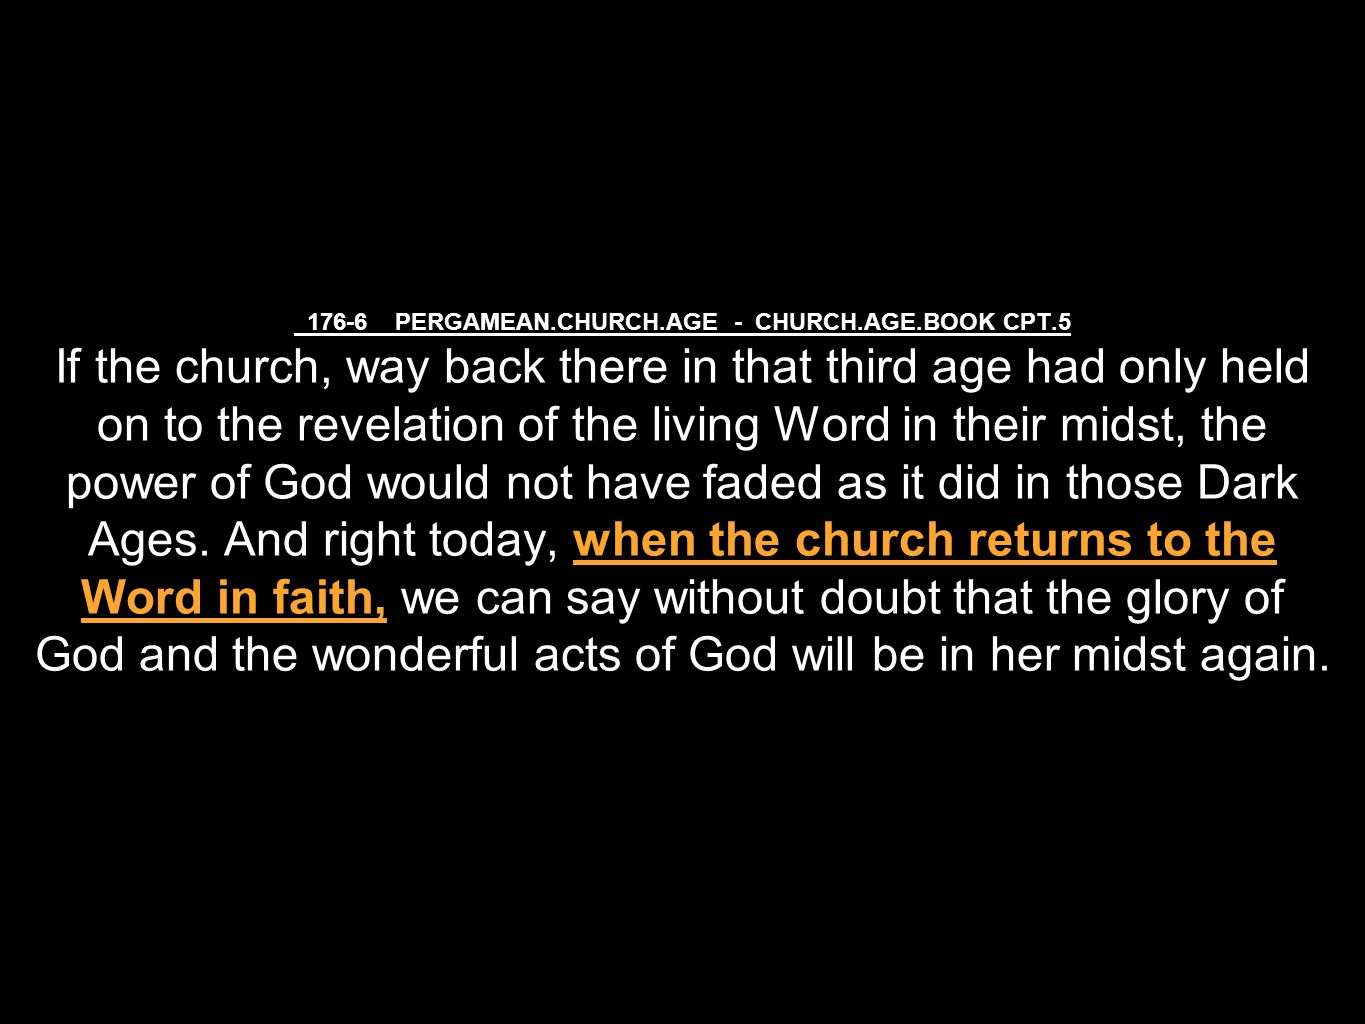 176-6 PERGAMEAN.CHURCH.AGE - CHURCH.AGE.BOOK CPT.5 If the church, way back there in that third age had only held on to the revelation of the living Word in their midst, the power of God would not have faded as it did in those Dark Ages.